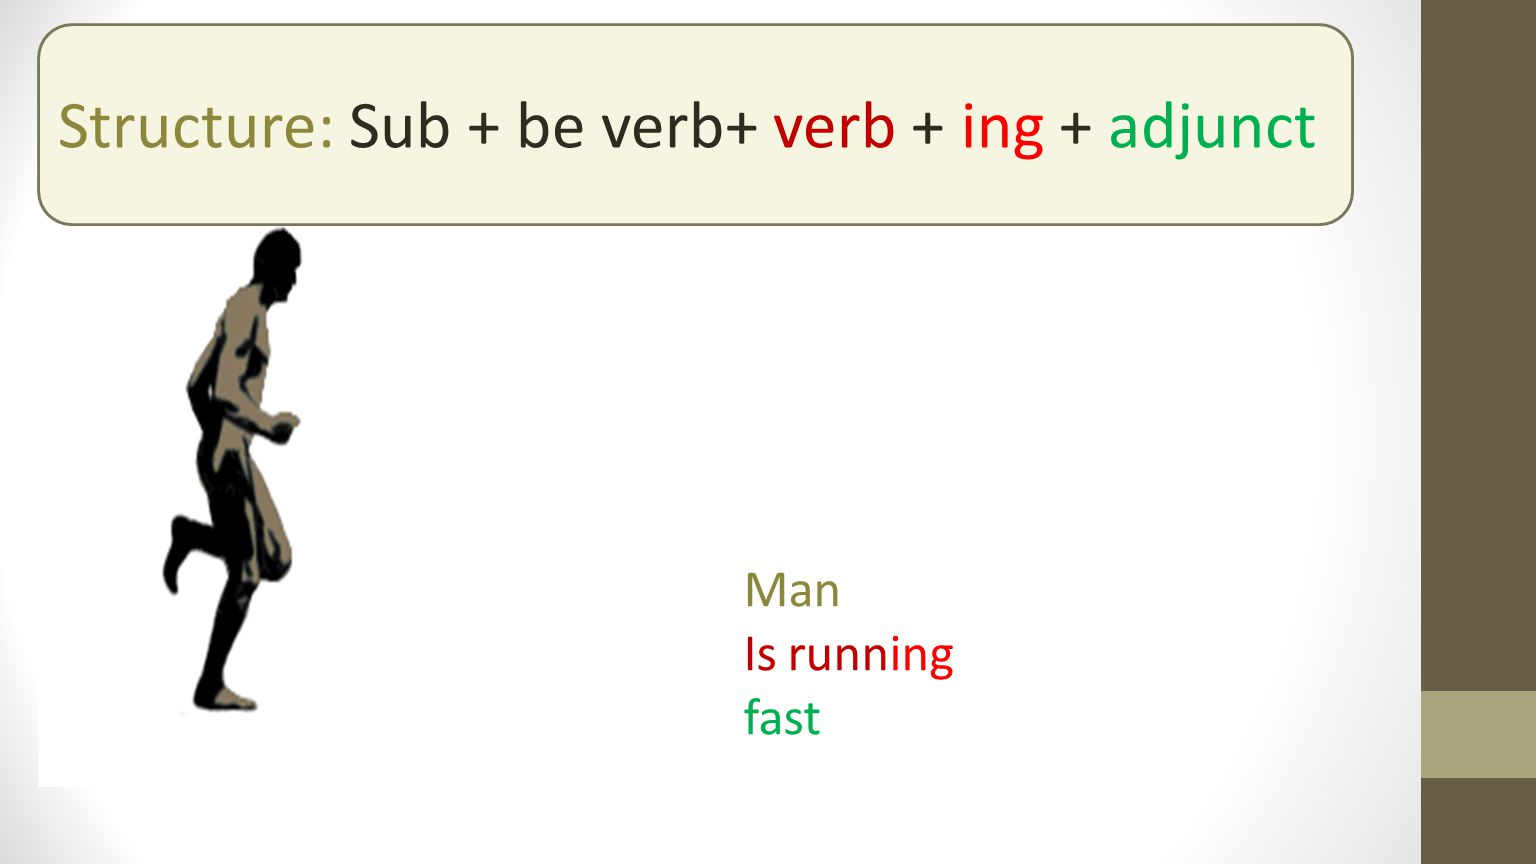 Man Is running fast Structure: Sub + be verb+ verb + ing + adjunct